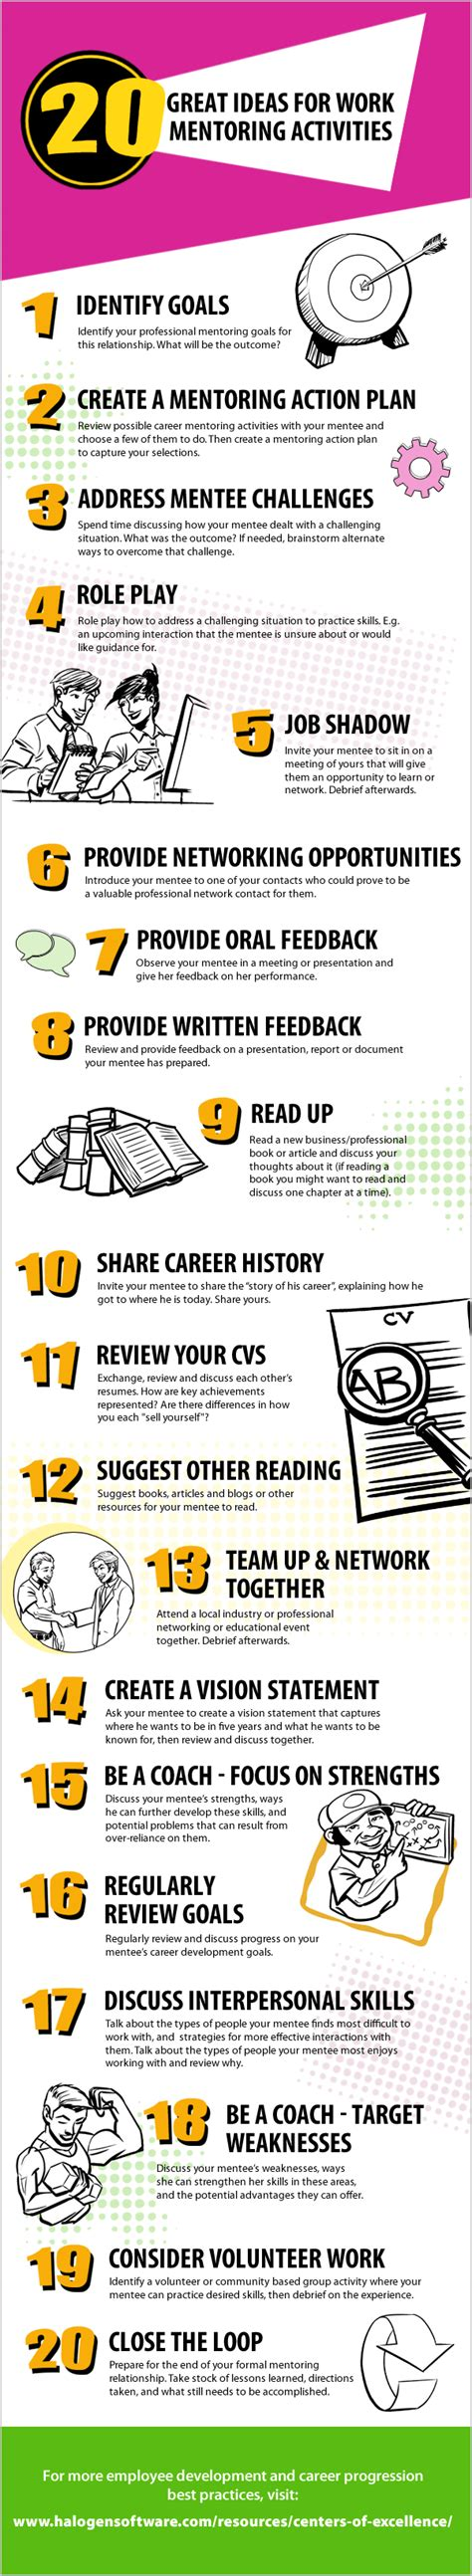 coaching and mentoring a framework for fostering organizational change books 20 great ideas for work mentoring activities infographic